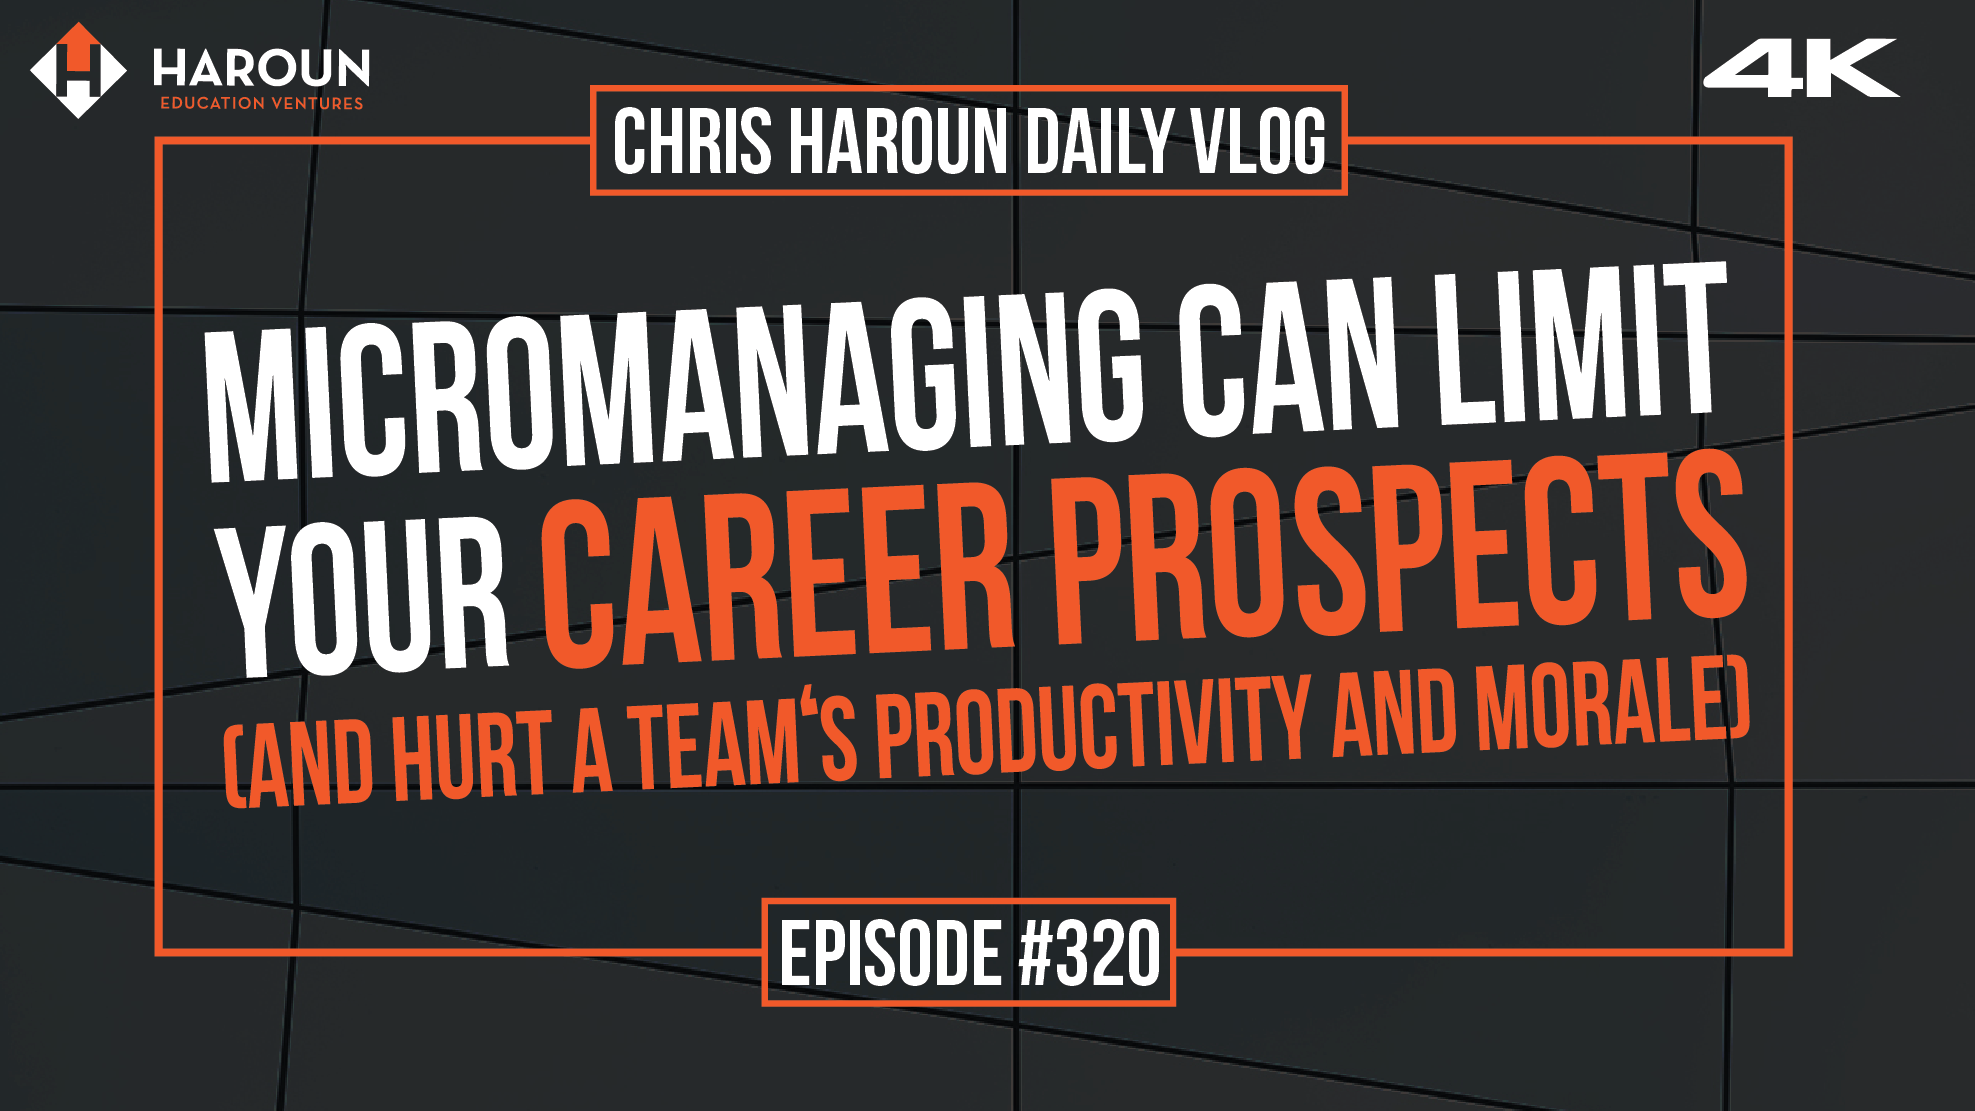 VLOG_320_6_16_2019_Micromanaging Can Limit Your Career Propspects (and Hurt a Team's Productivity and Morale).png